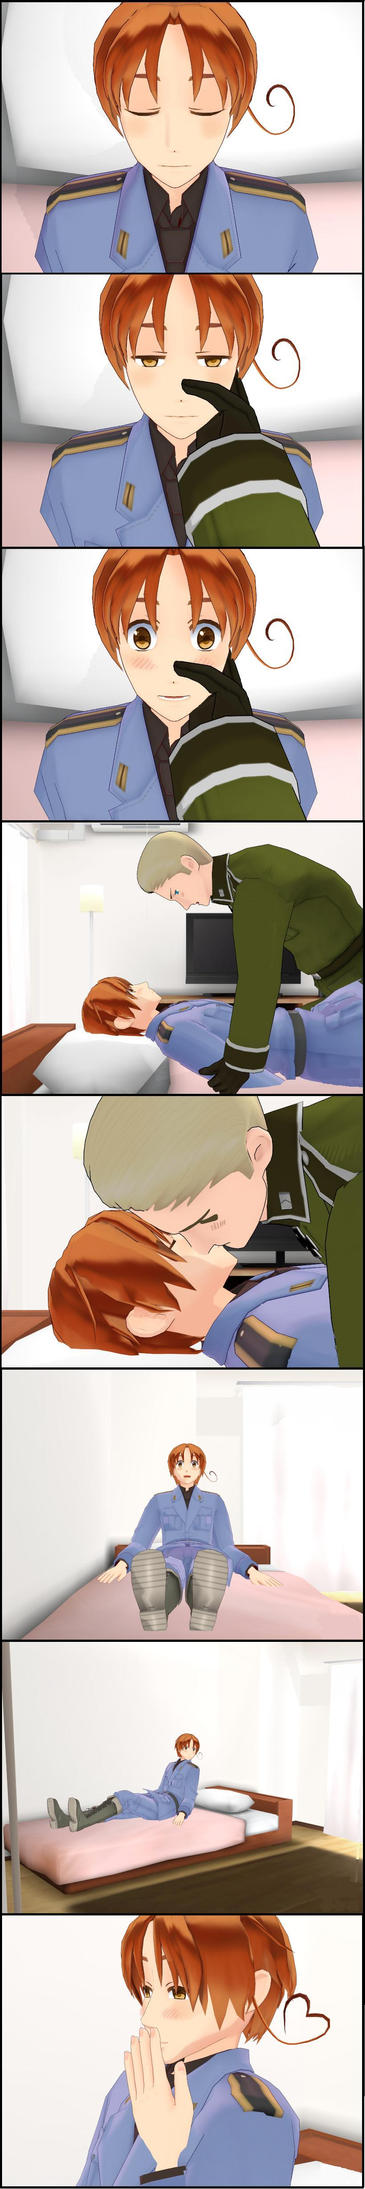 Butterfly kiss (A short Germany X Italy comic) by Story-Teller-Girl